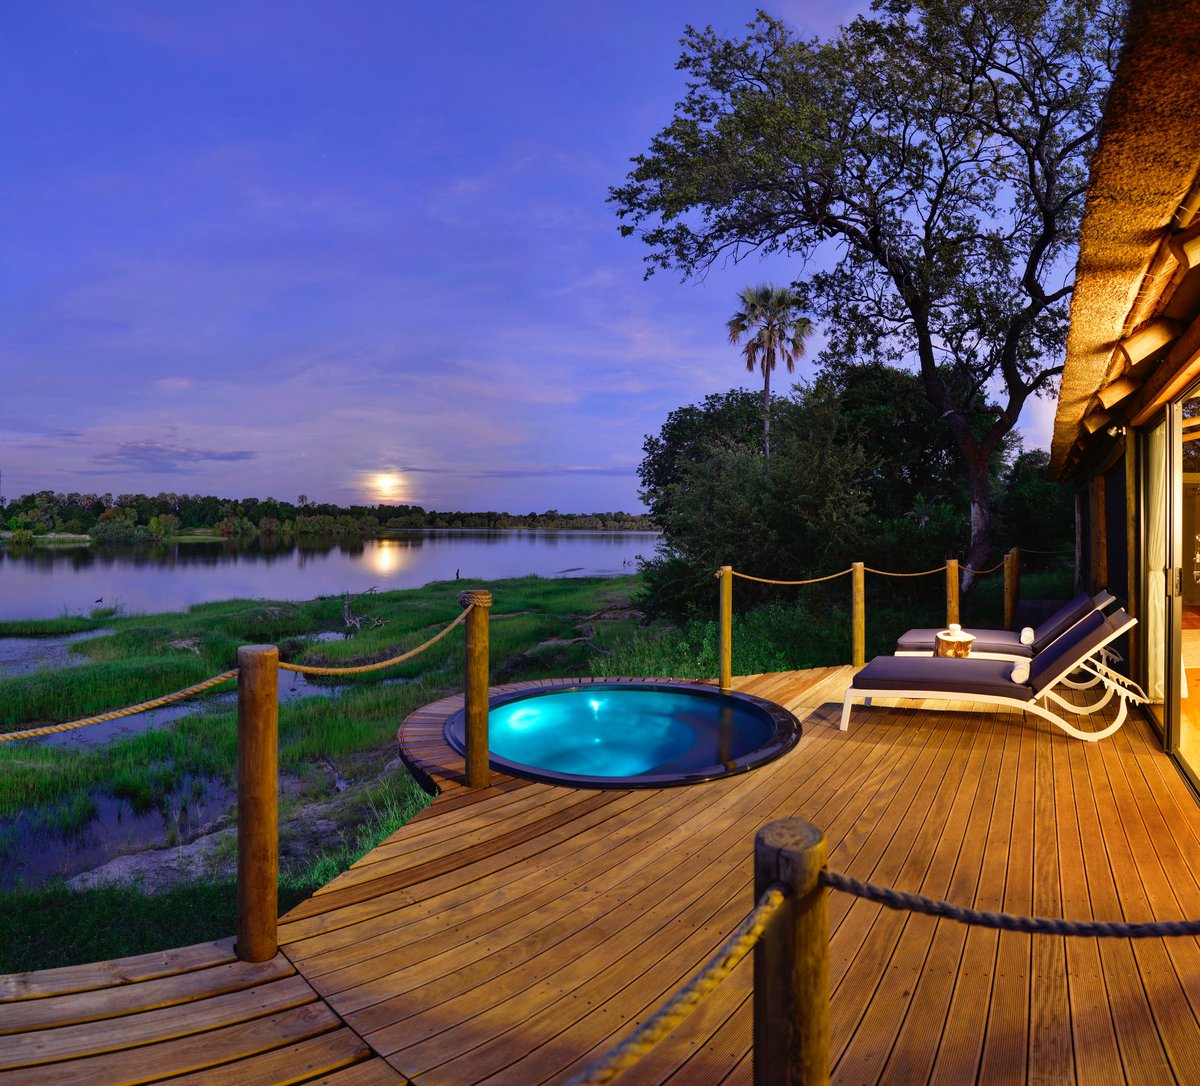 On this week's G'Day with Ian Swain #podcast, Ian speaks with Roddy Meiring of @VFriverlodge, from the shores of the mighty #Zambezi River in #Zimbabwe. Three elephants casually wander past in a scene which showcases just what makes the lodge so special.  https://t.co/FtPGhPFOhn https://t.co/IE24wUOMd4